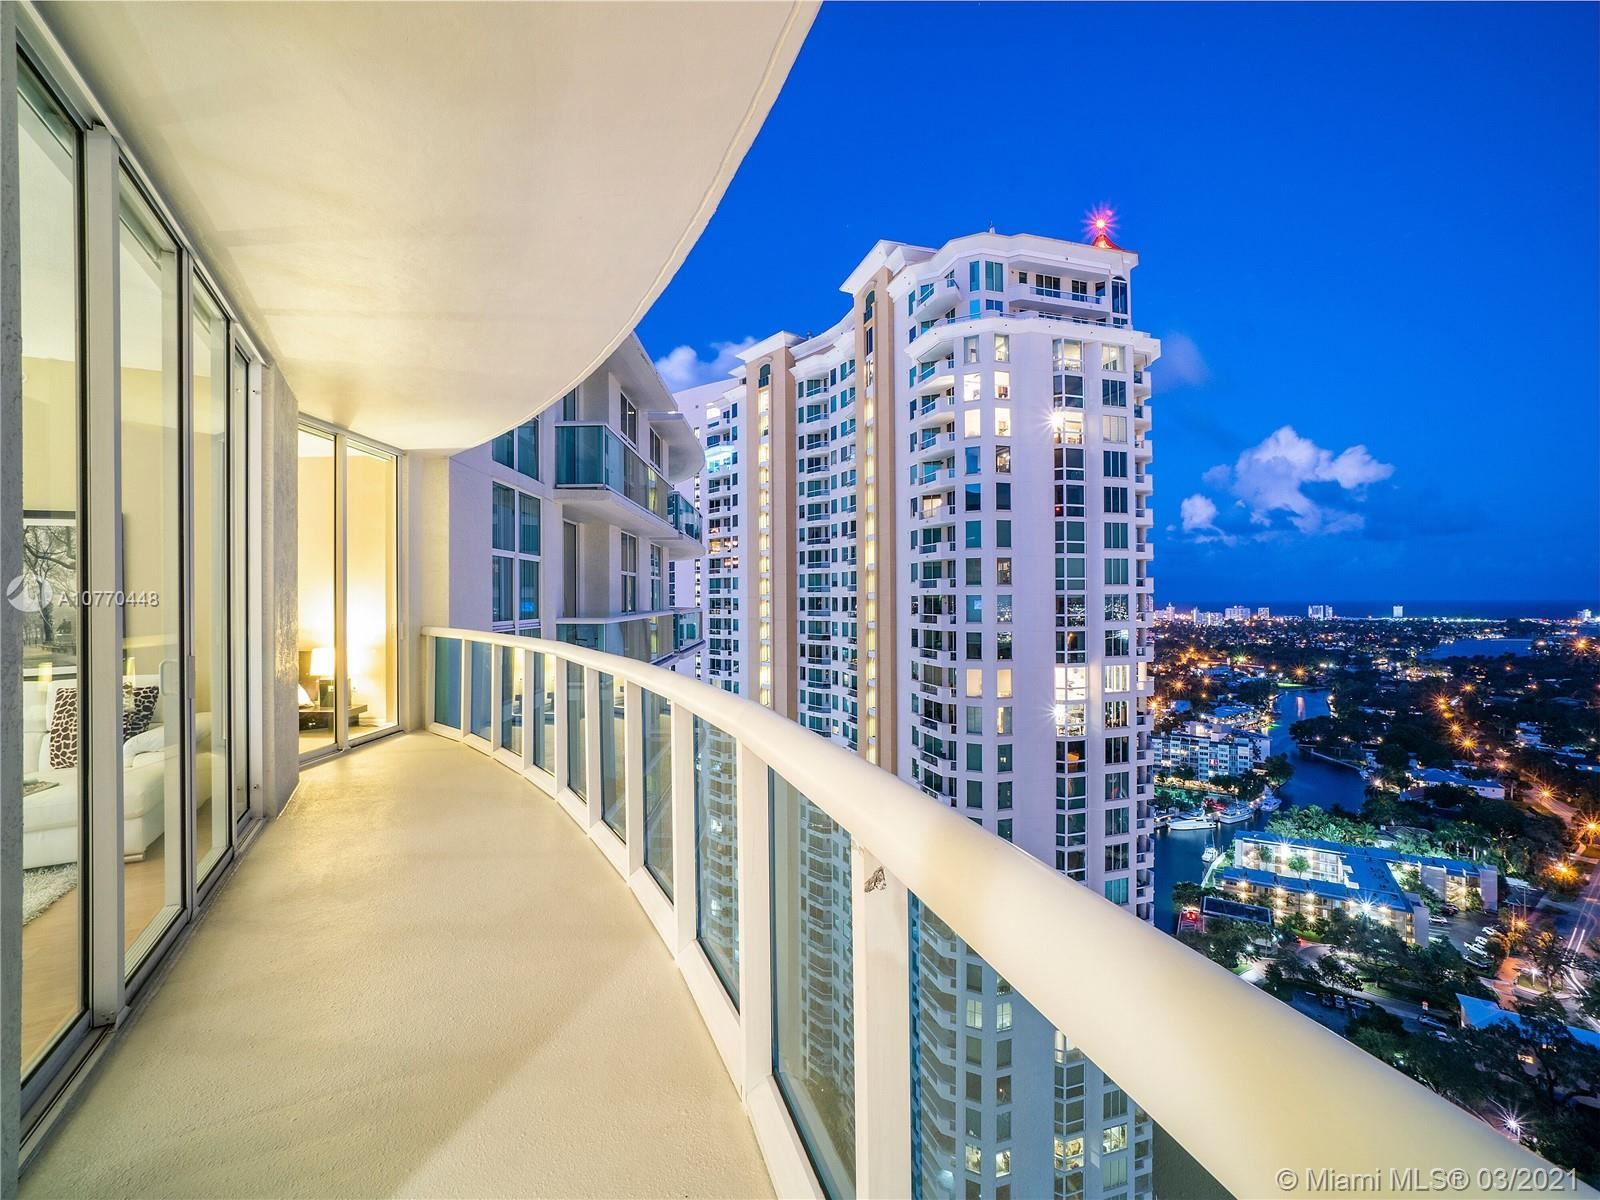 347 N New River Dr E #3101, Fort Lauderdale, FL 33301 - #: A10770448